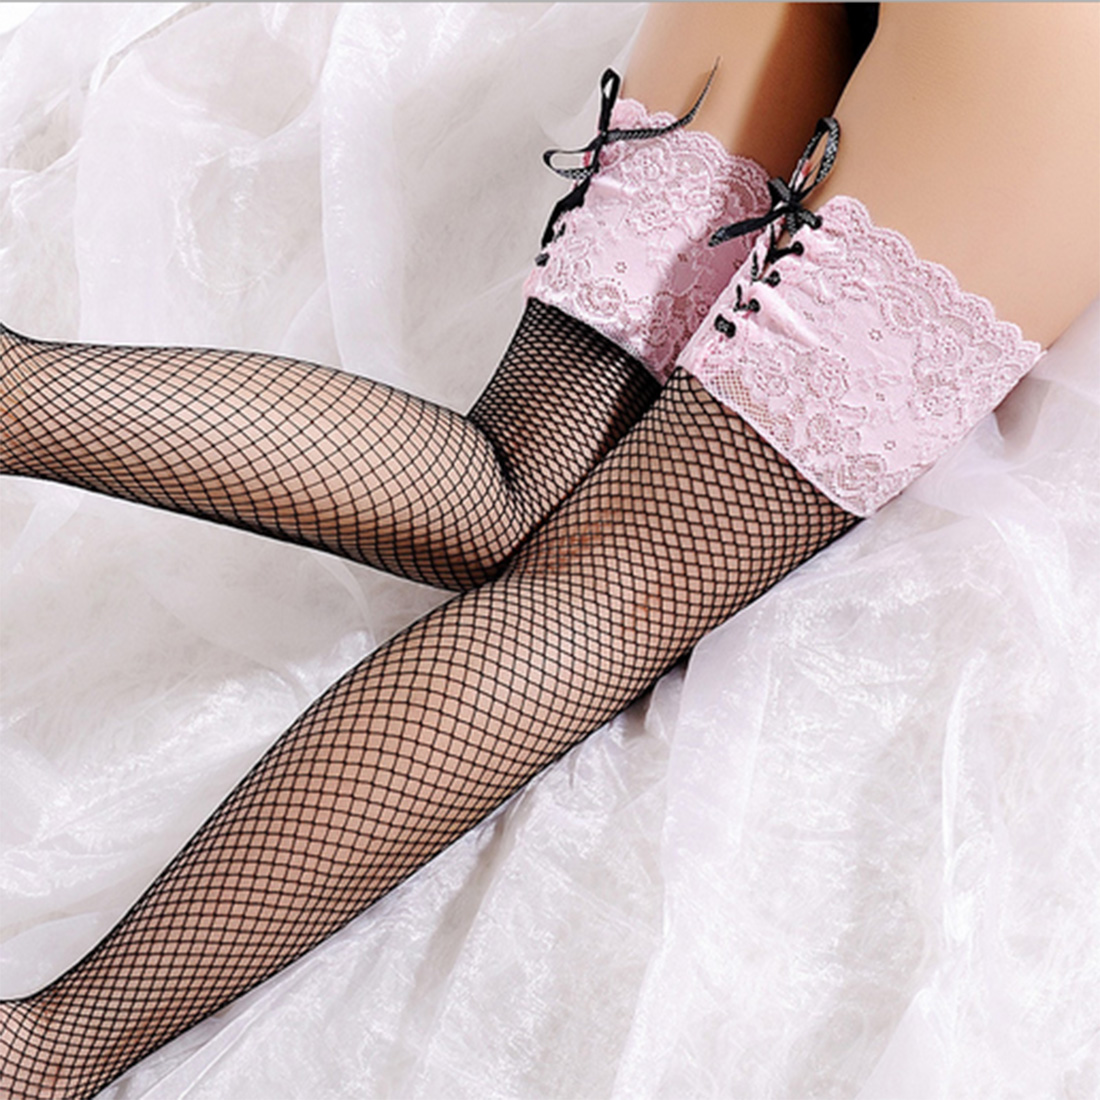 cf100d856d153 Sexy Women's Fishnet Stocking Sheer Lace Top Thigh High Stockings Hosiery  Nets Stay Up For Women Female Stockings Pink White